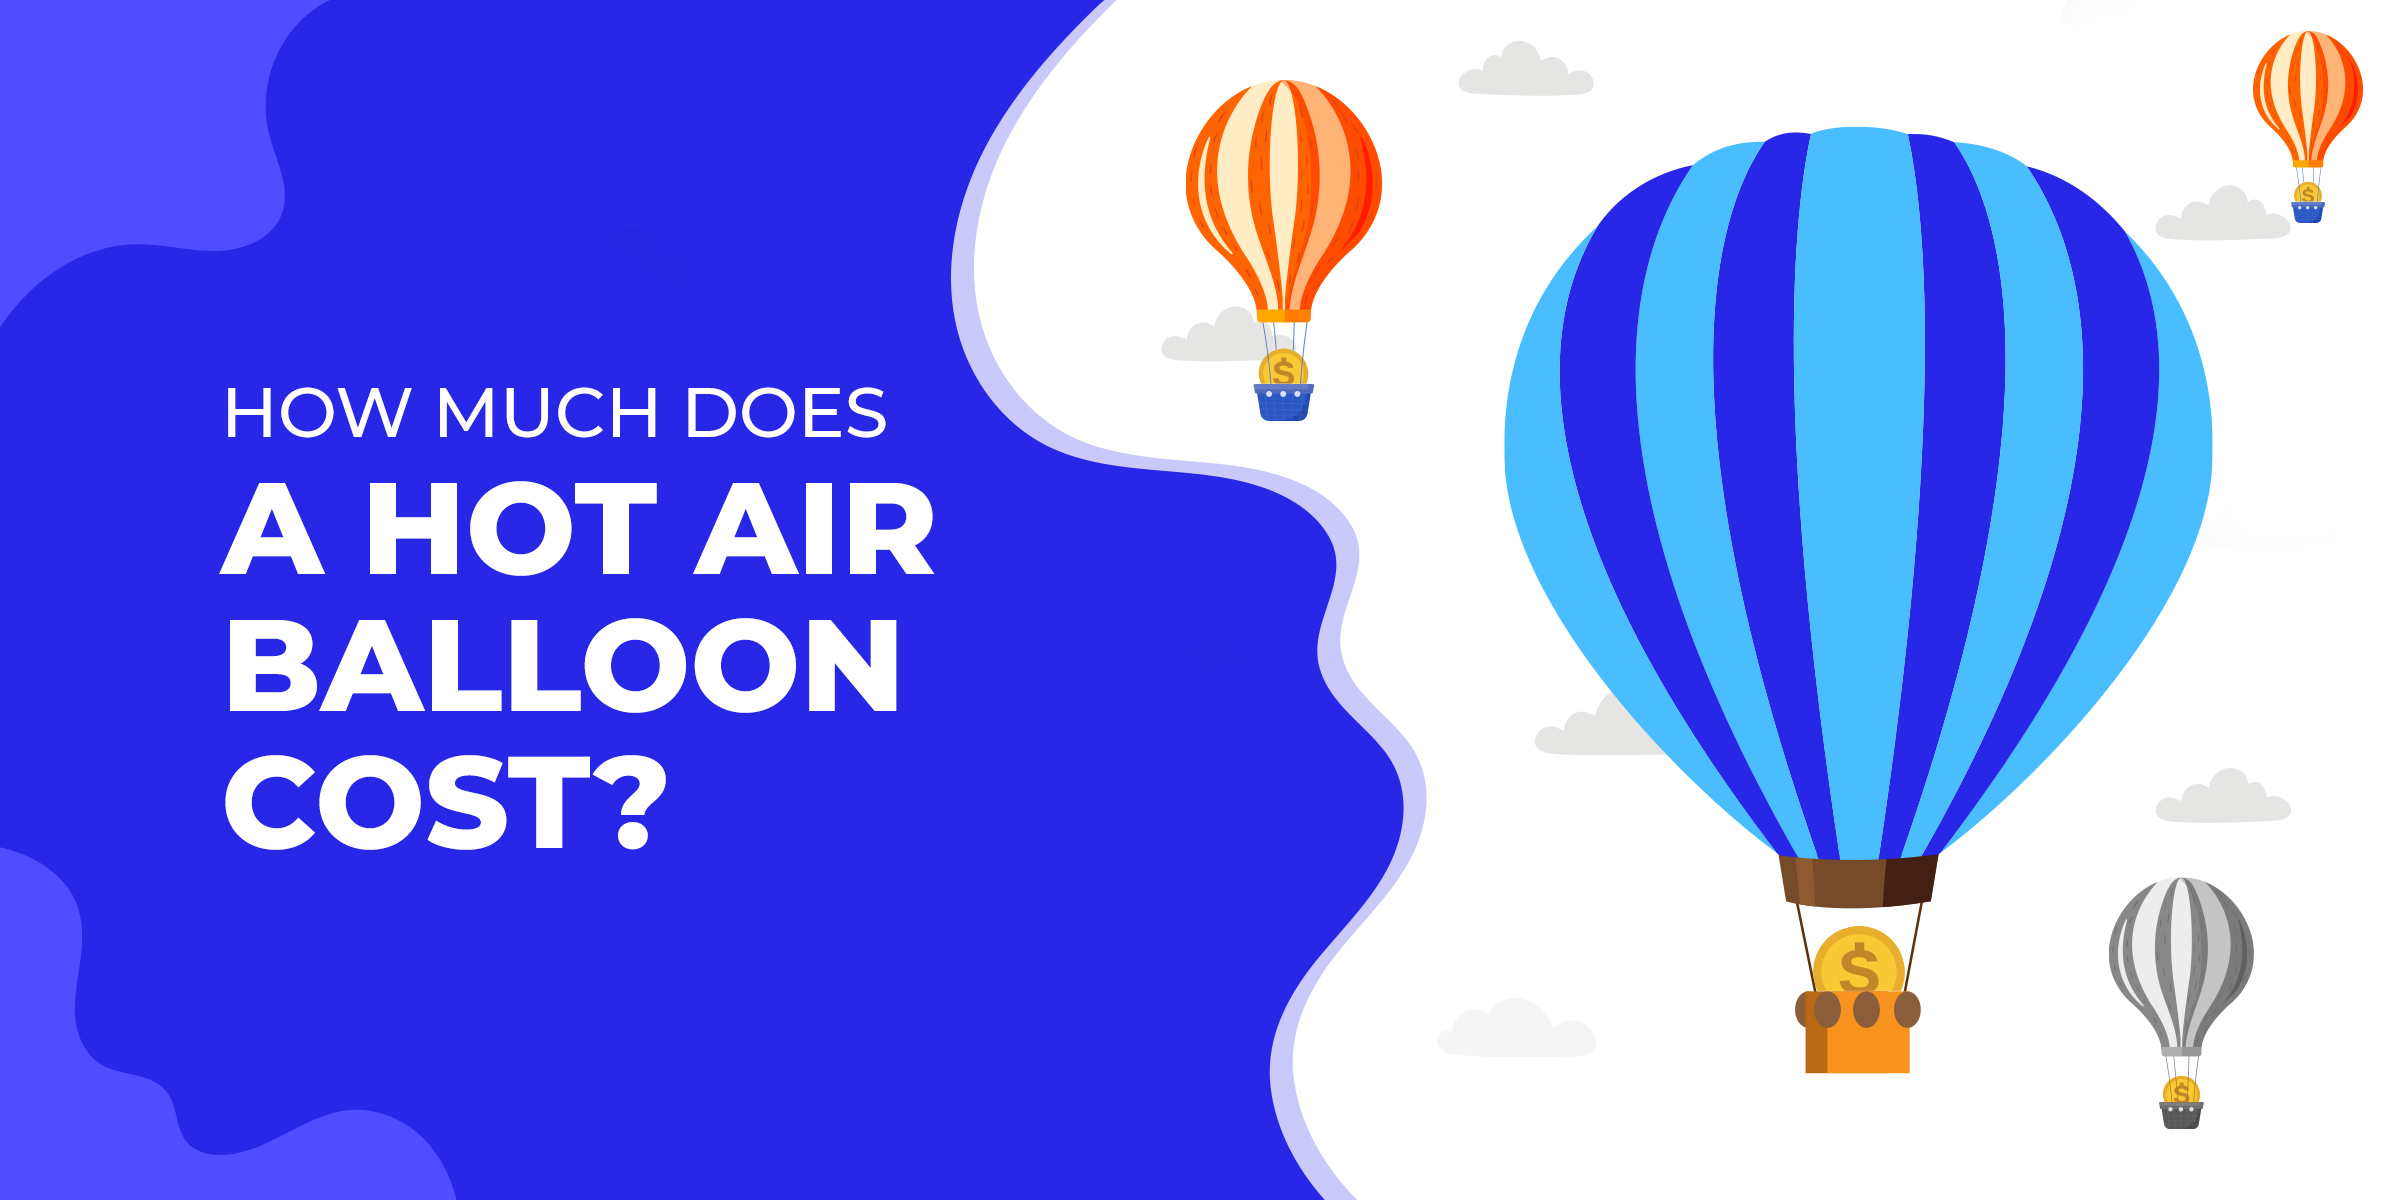 How much does a hot air balloon cost